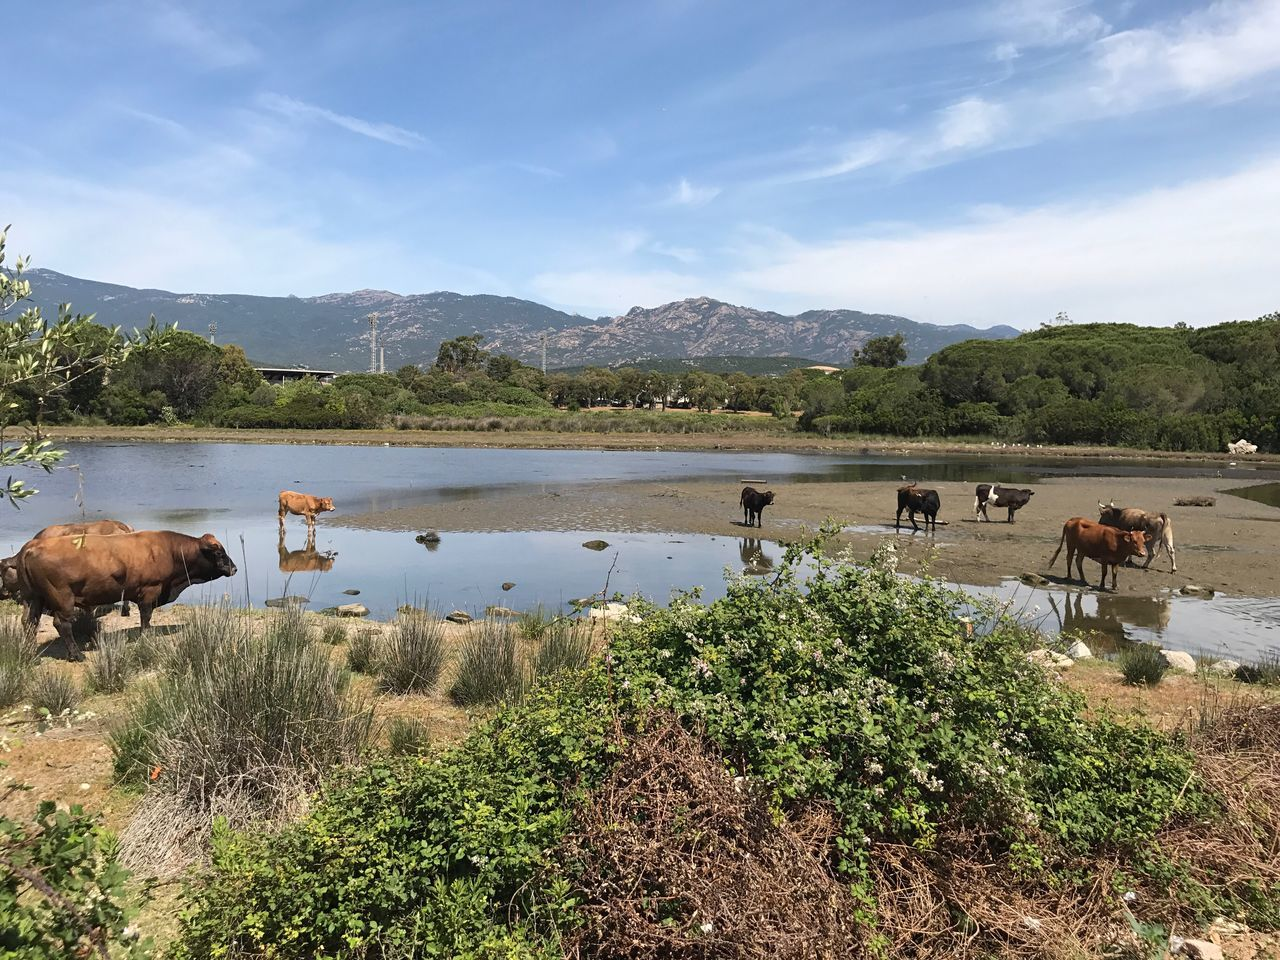 Corsica Corse Mountain Water Animal Themes Lake Nature Mammal Tree Domestic Animals Sky Mountain Range Livestock Beauty In Nature Outdoors Scenics Day Cloud - Sky No People Large Group Of Animals Animals In The Wild Grazing